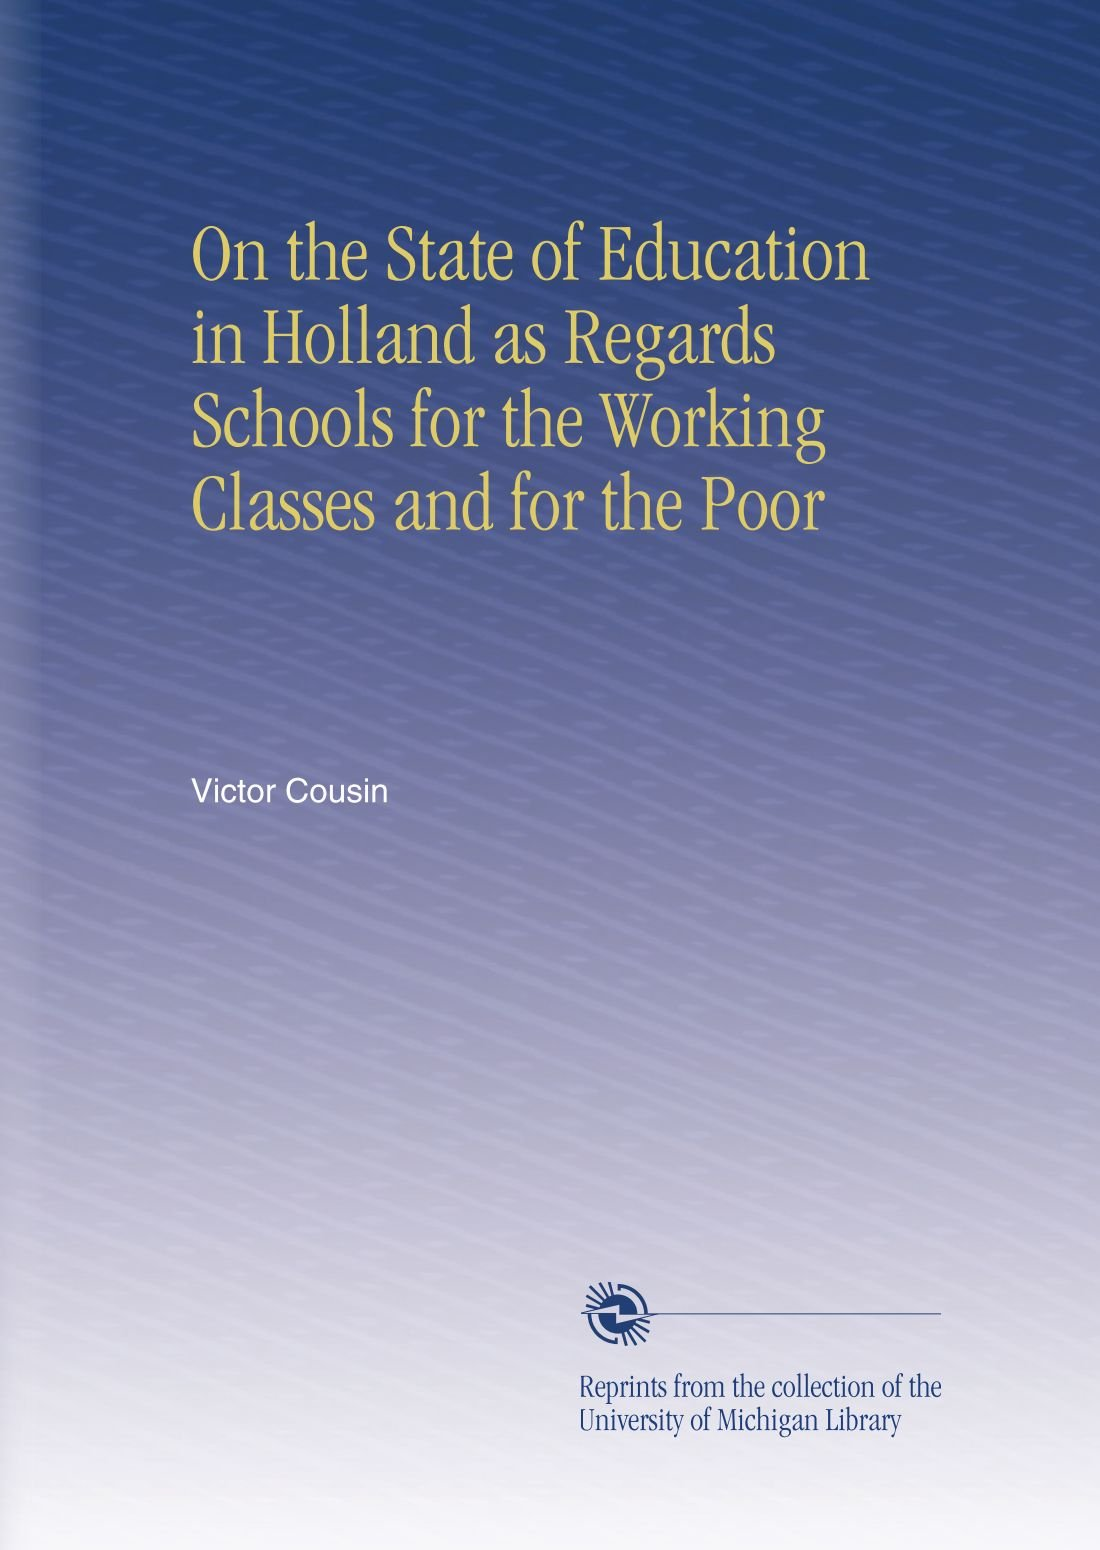 On the State of Education in Holland as Regards Schools for the Working Classes and for the Poor ebook